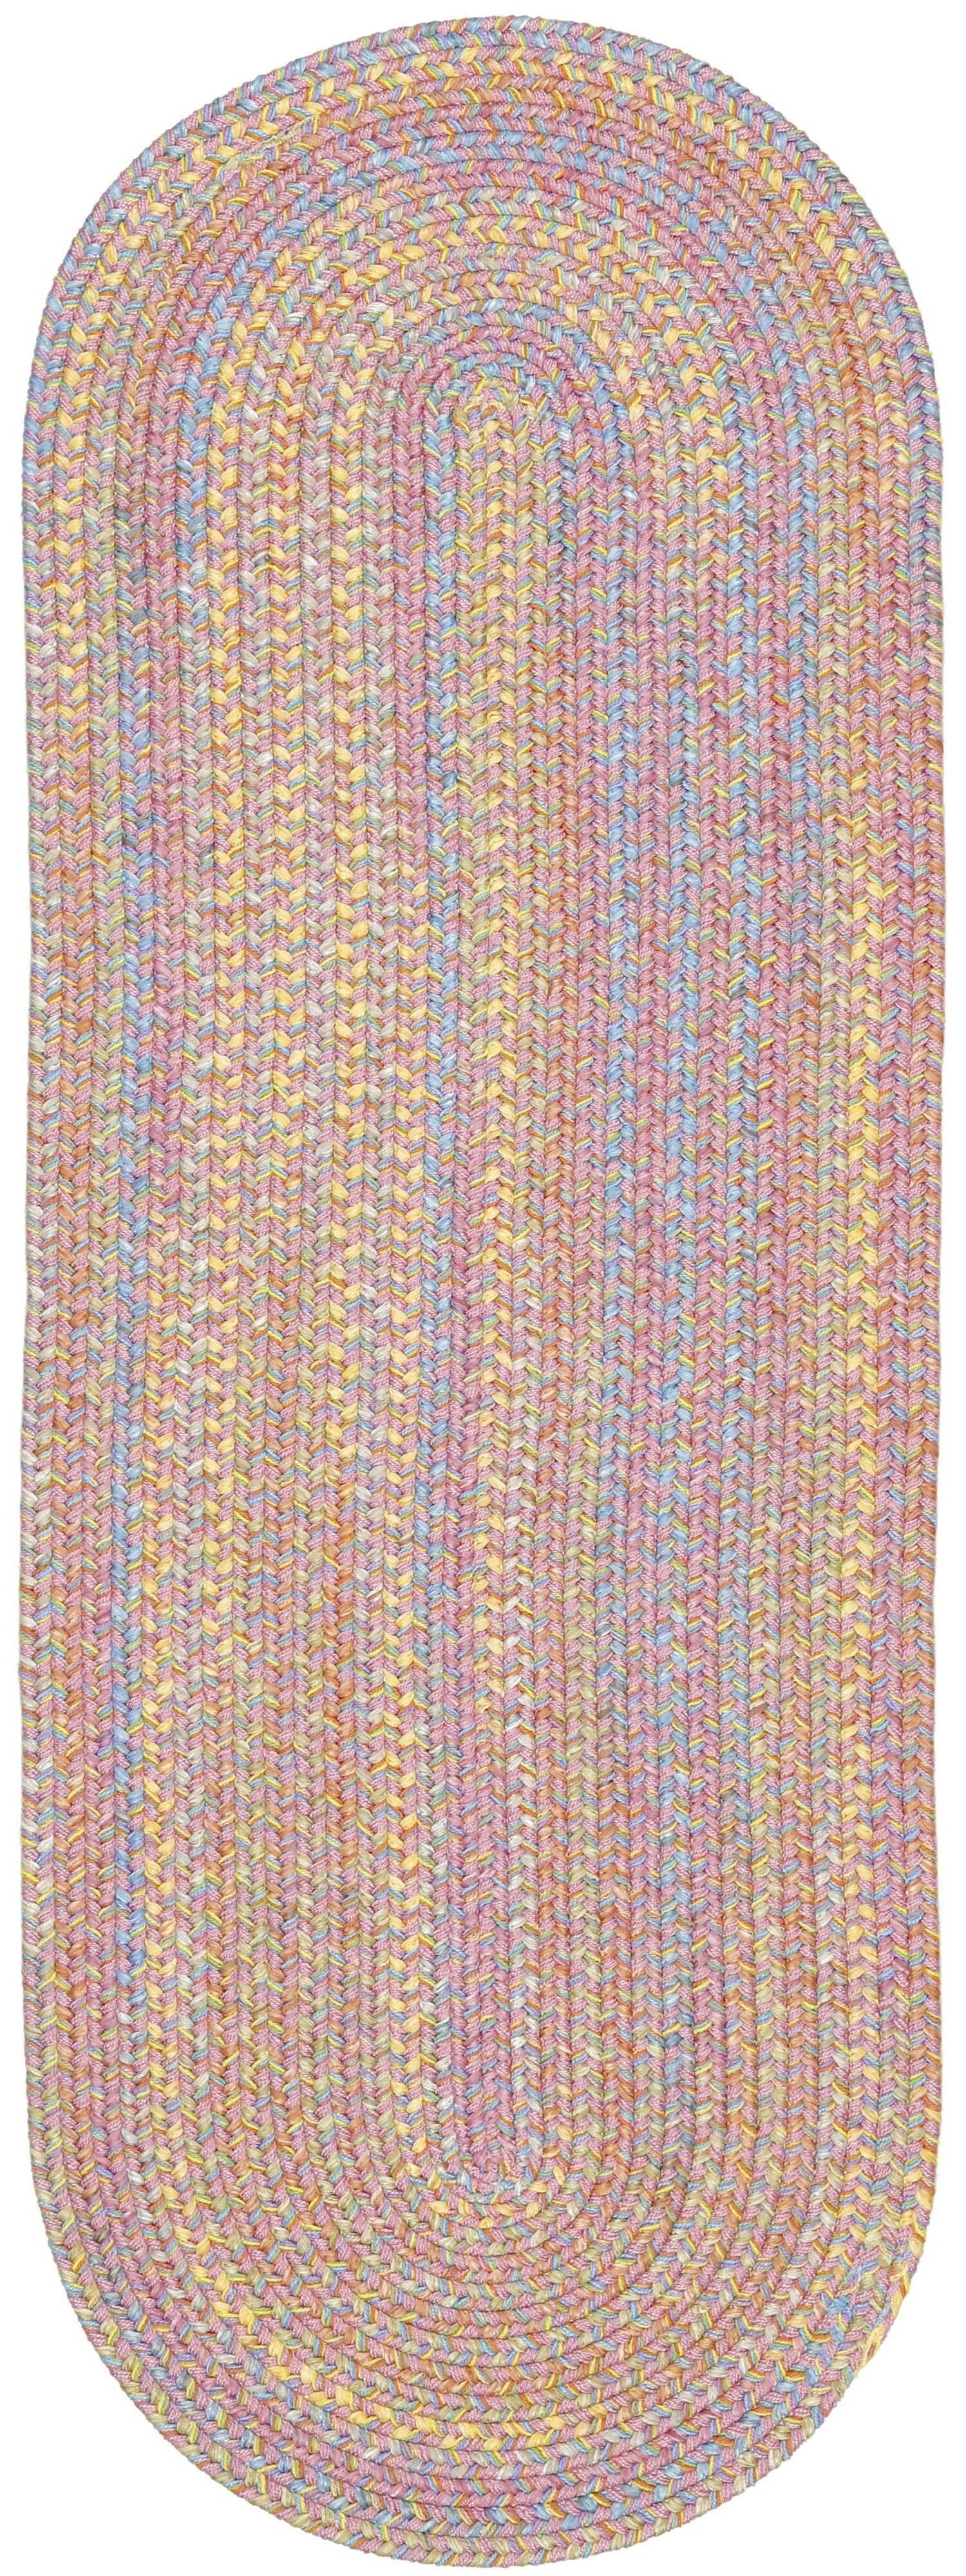 Saidpur Pink Indoor/Outdoor Area Rug Rug Size: Oval 2' x 8'